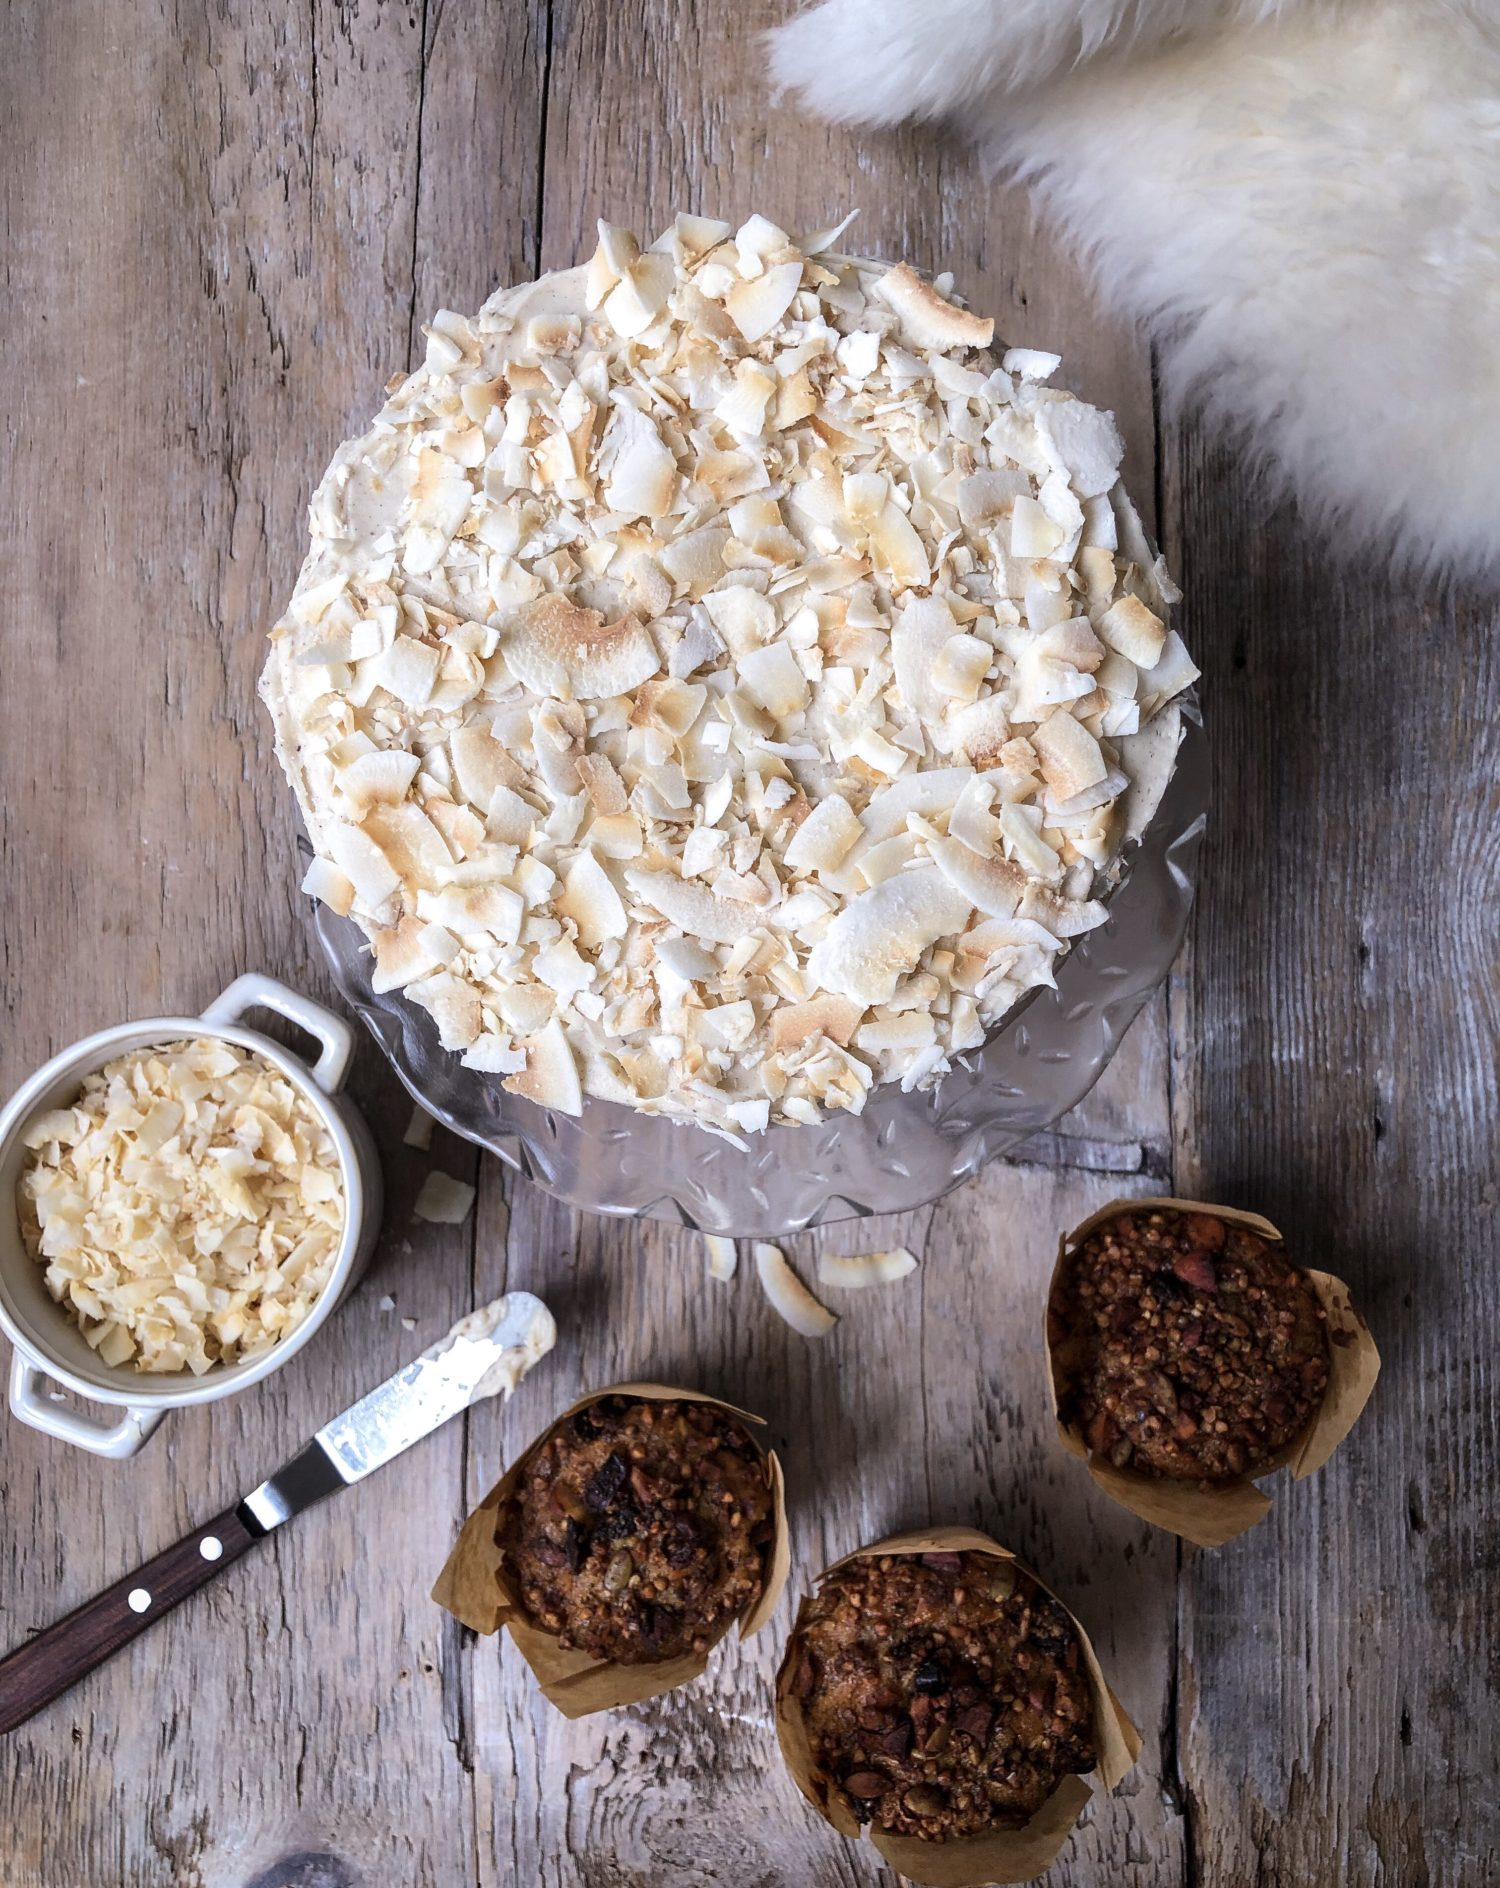 Cardamom Carrot Cake with Allspice Cream Cheese Frosting